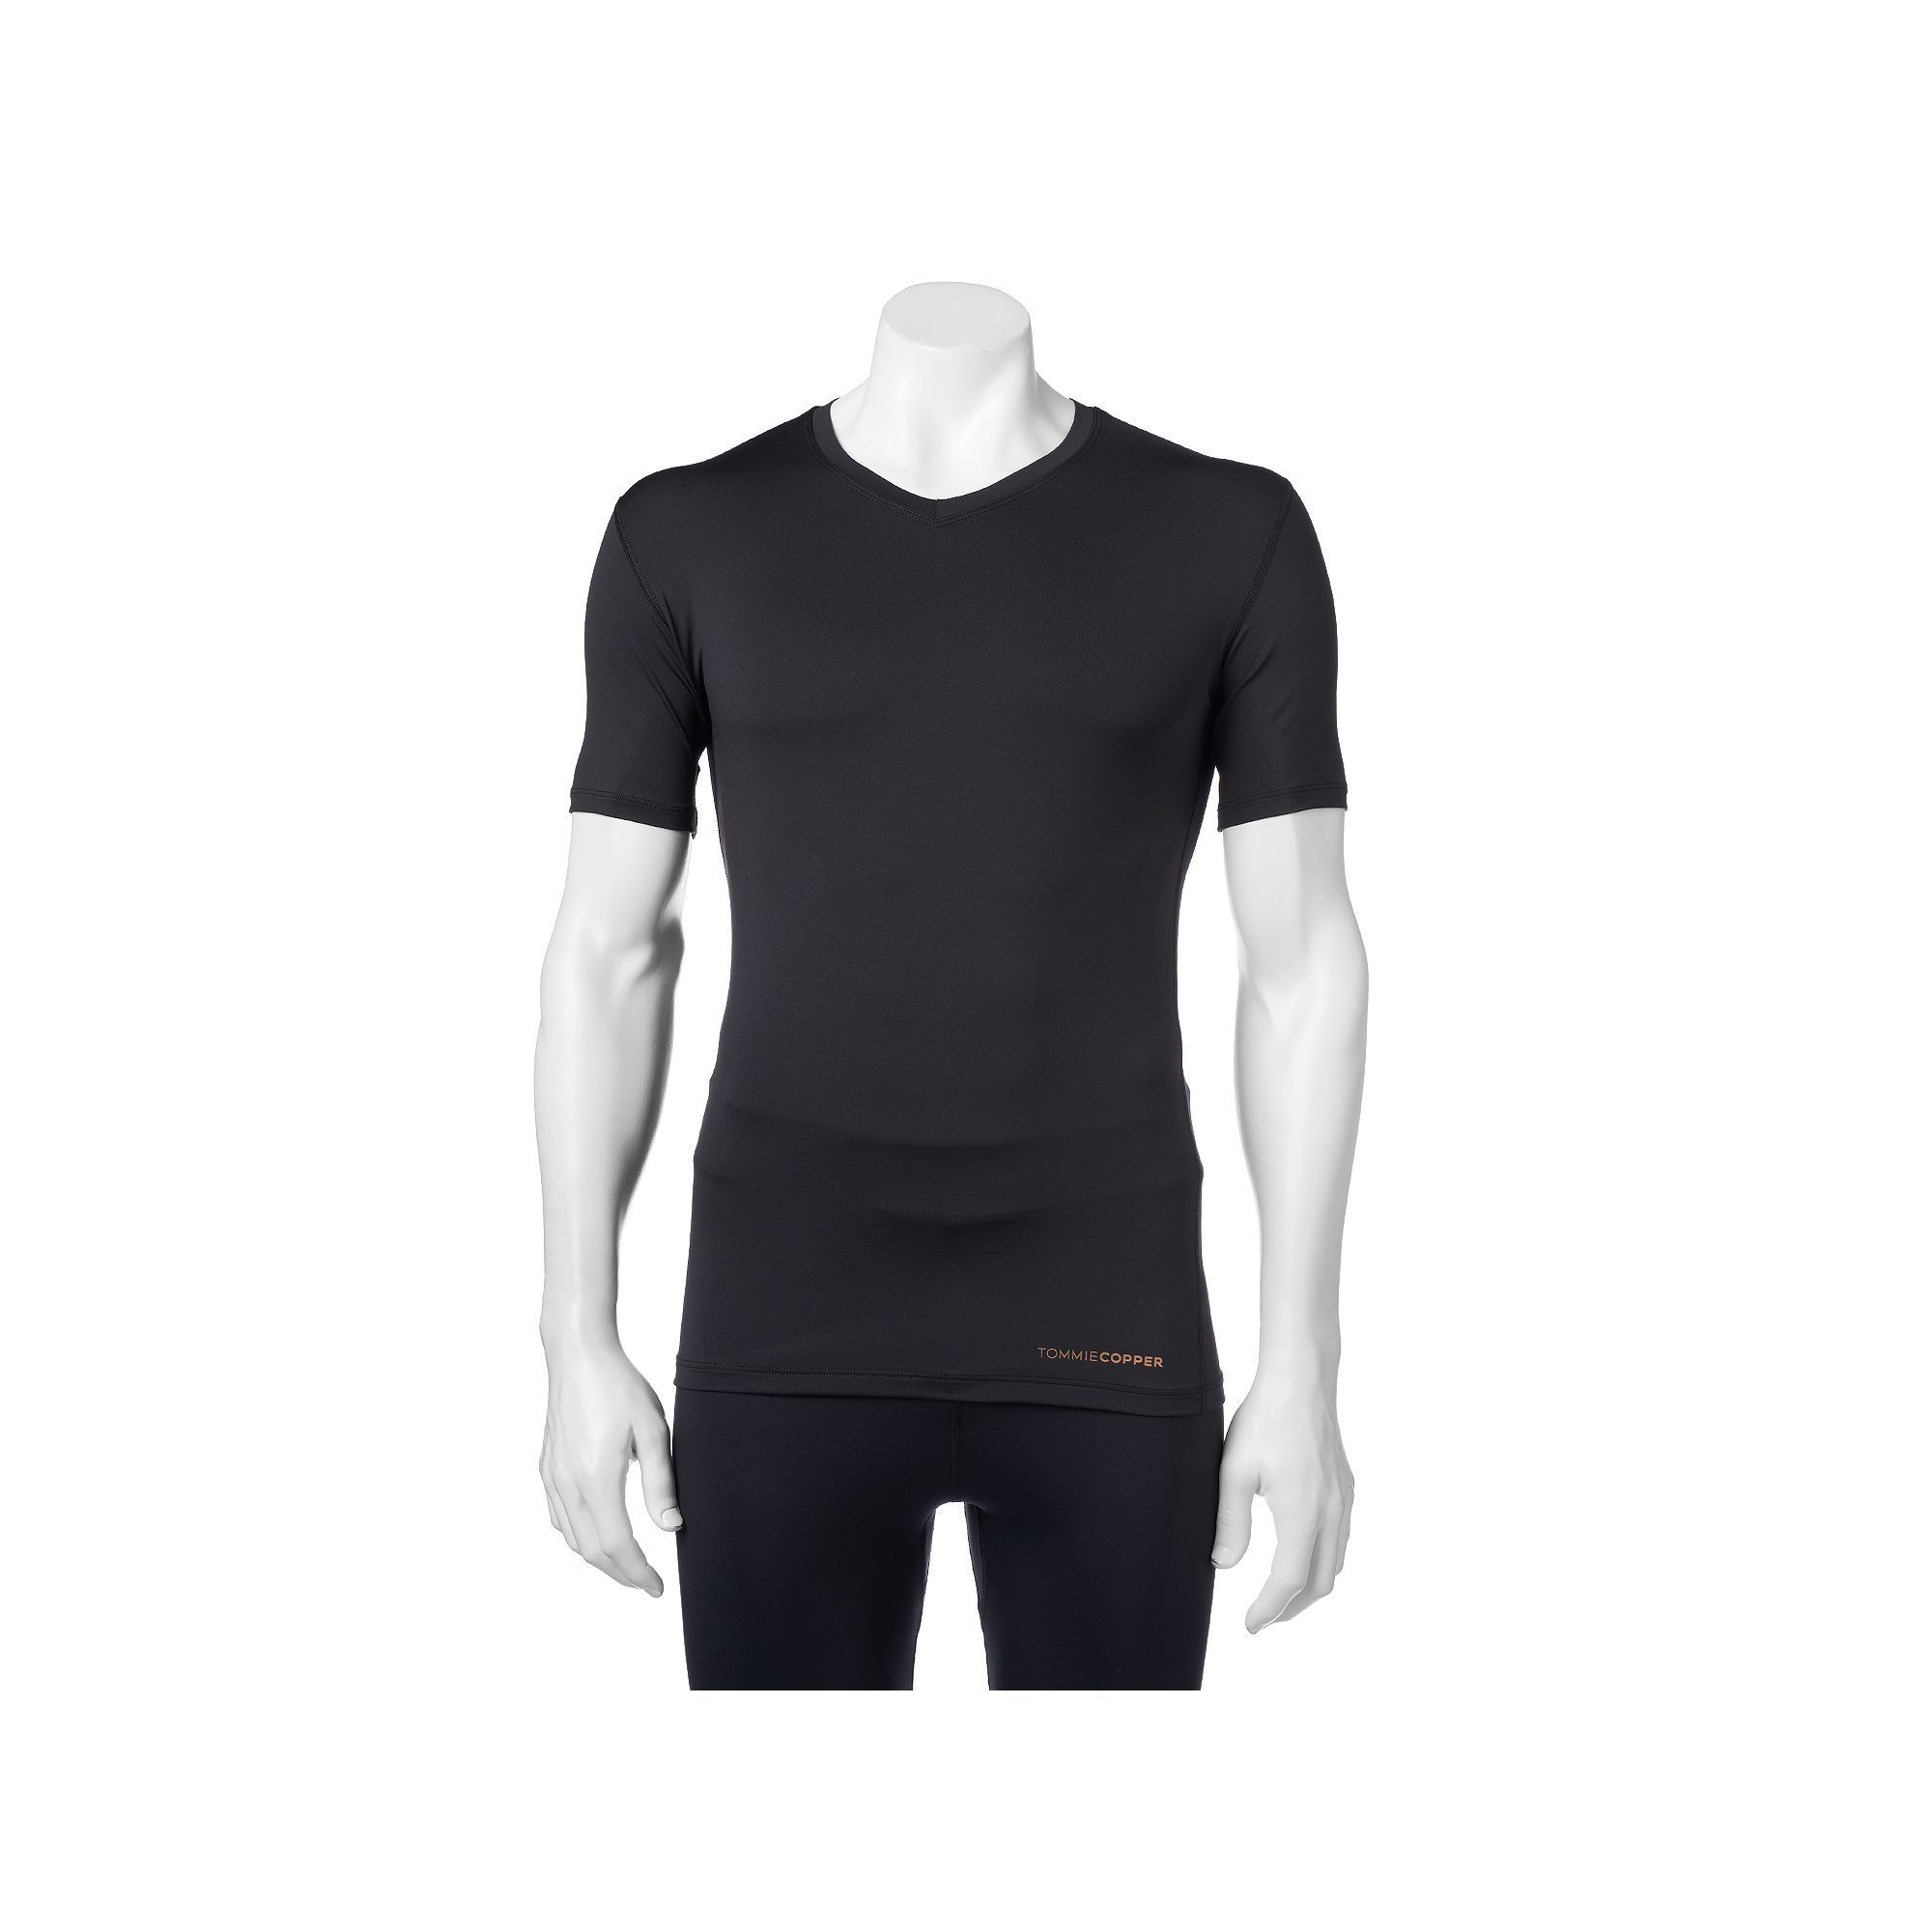 a18cee599 Men's Tommie Copper Recovery Compression V-Neck Shirt, Size: Medium, Black